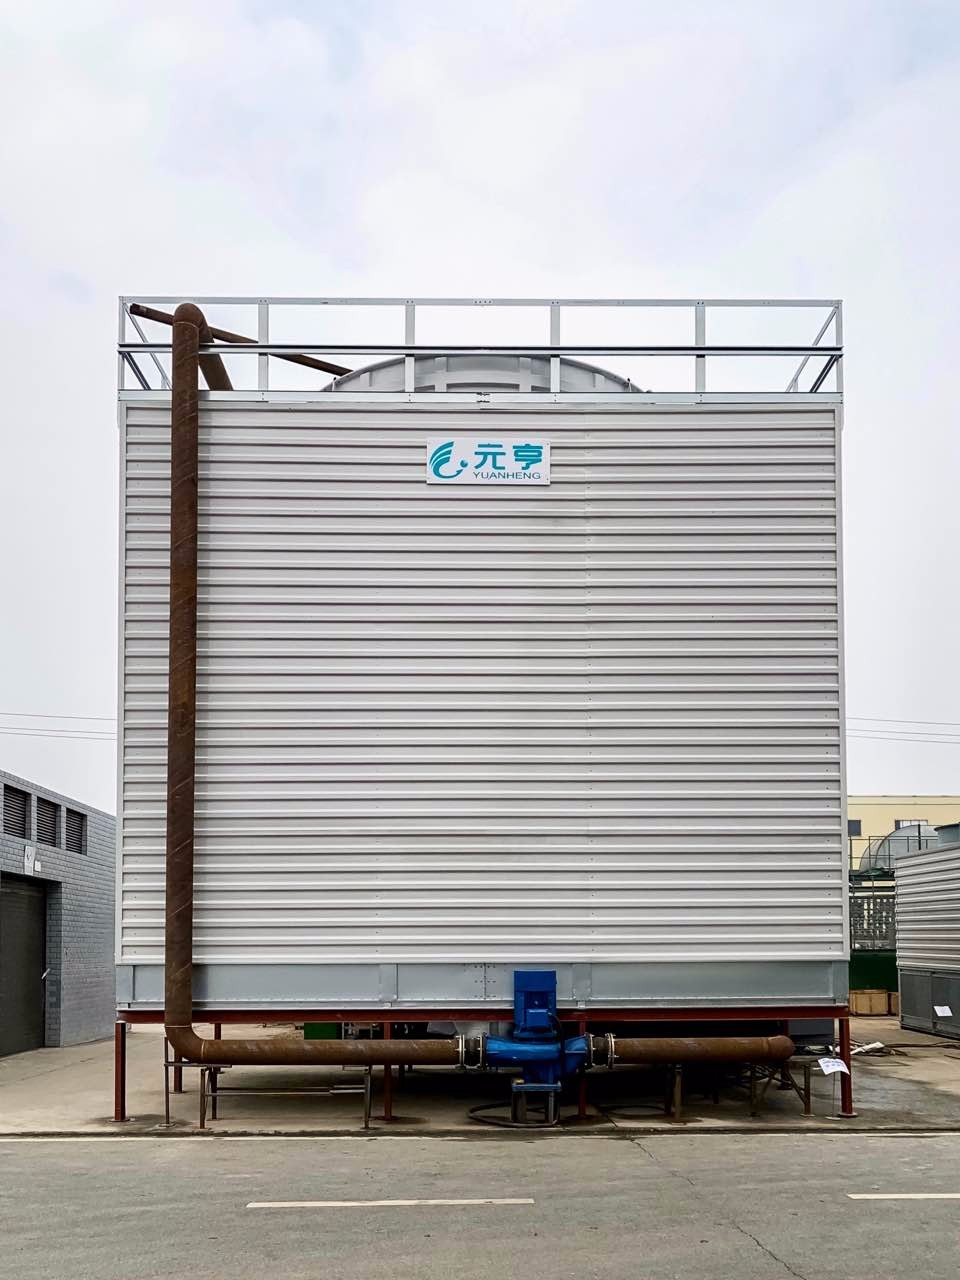 High quality Open Type Circuit Cross Flow Cooling Tower Quotes,China well-know professional Open Type Circuit Cross Flow Cooling Tower Factory,your best choice Open Type Circuit Cross Flow Cooling Tower Purchasing